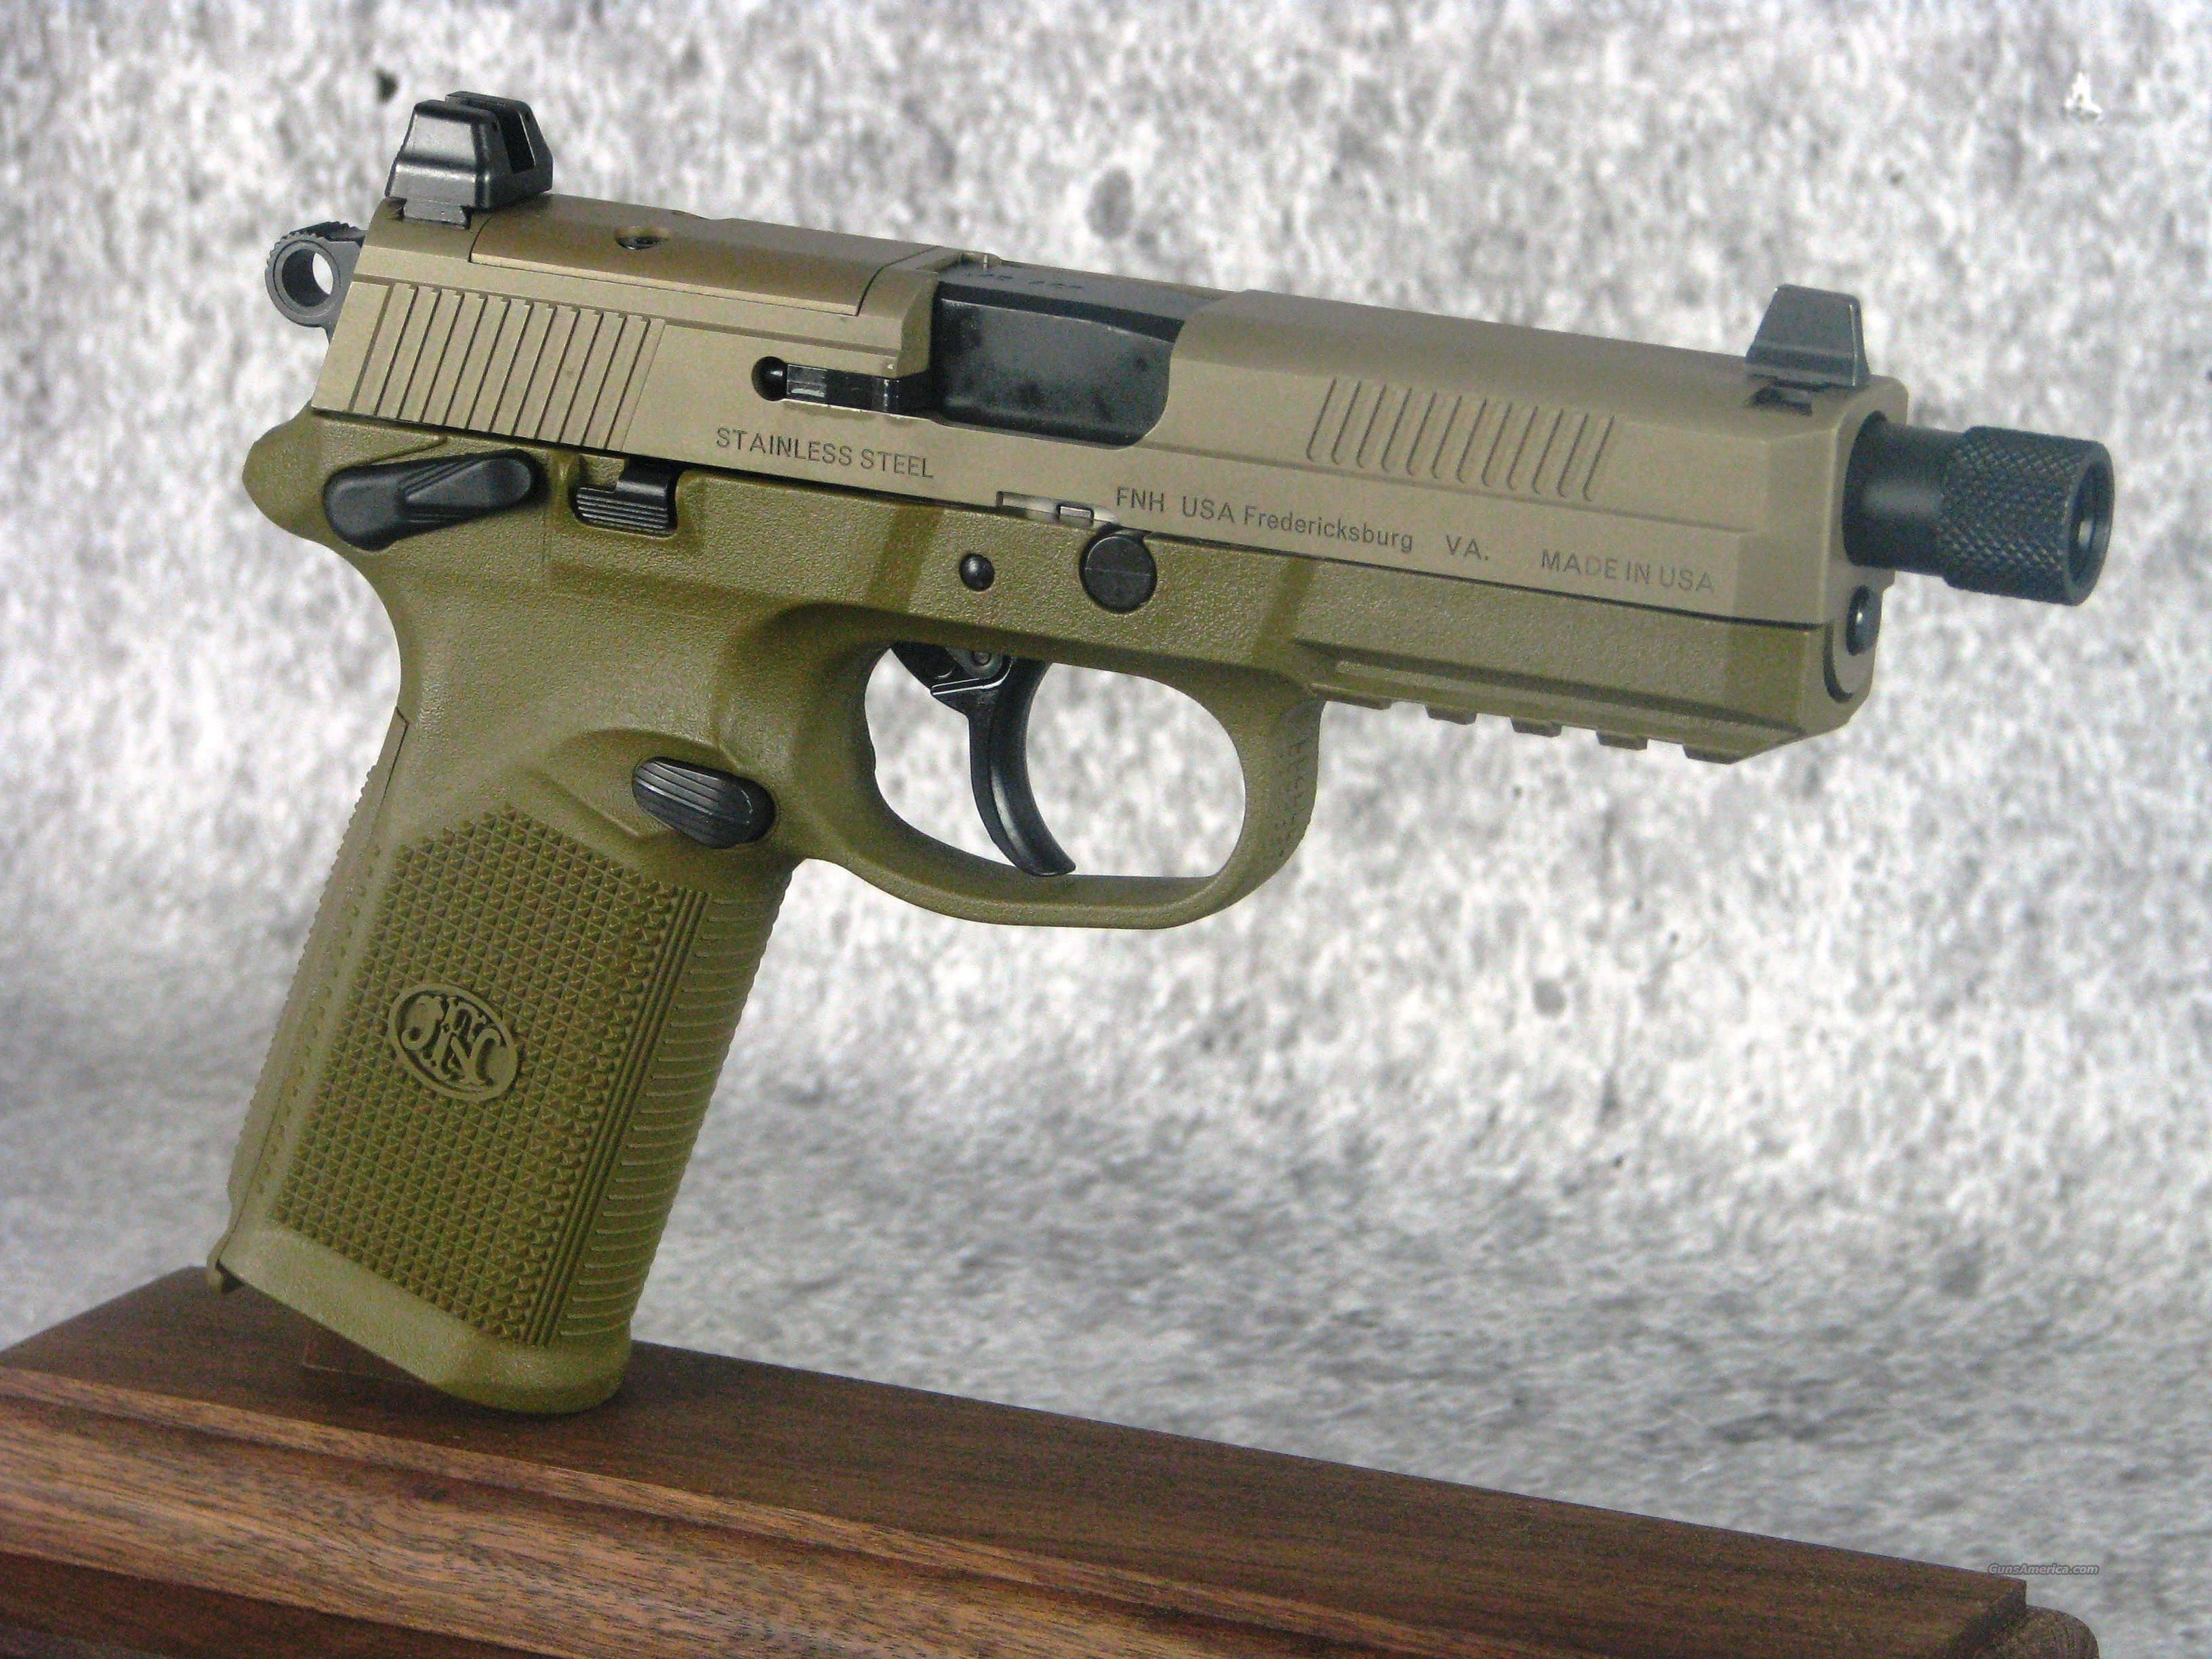 FN FNX-45 Tacical 45 66968 /EASY PAY $103 Monthly  Guns > Pistols > FNH - Fabrique Nationale (FN) Pistols > FNP